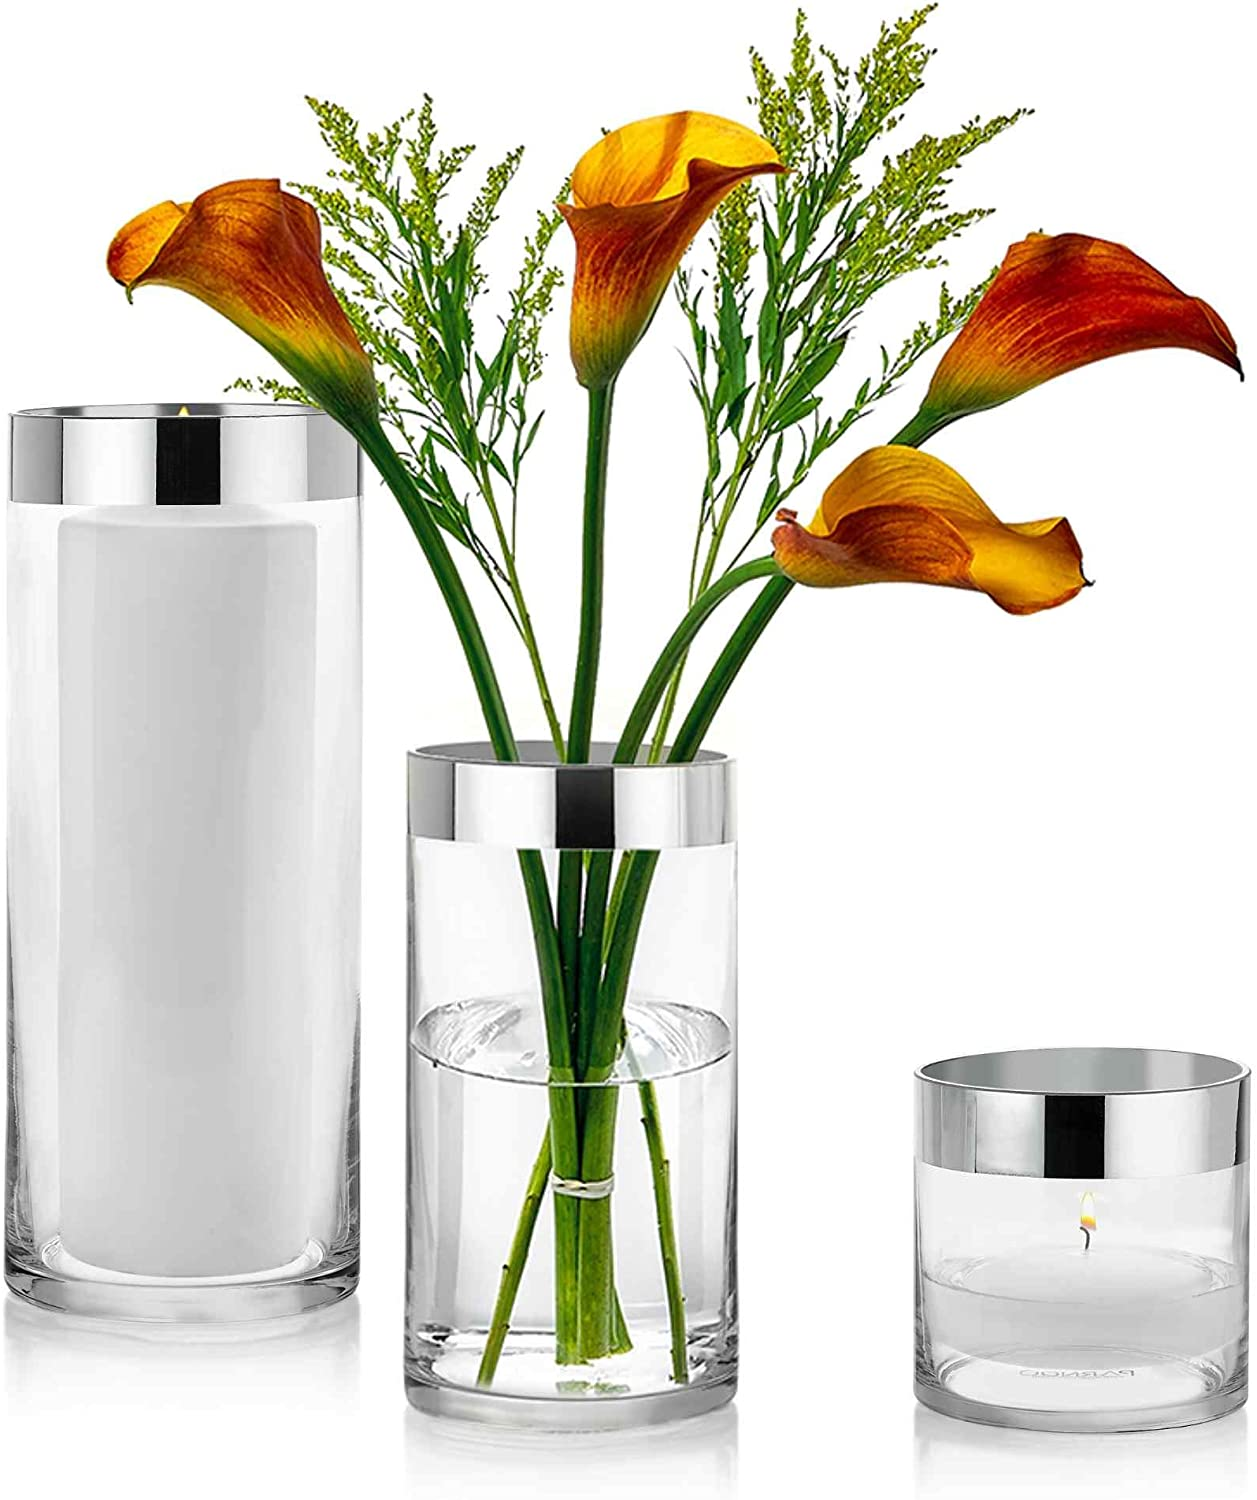 Set of 3 Glass Cylinder Vases 4, 8, 10 Inch Tall with 1 Inch Silver Rim – Multi-use: Pillar Candle, Floating Candles Holders or Flower Vase – Perfect as a Wedding Centerpieces.